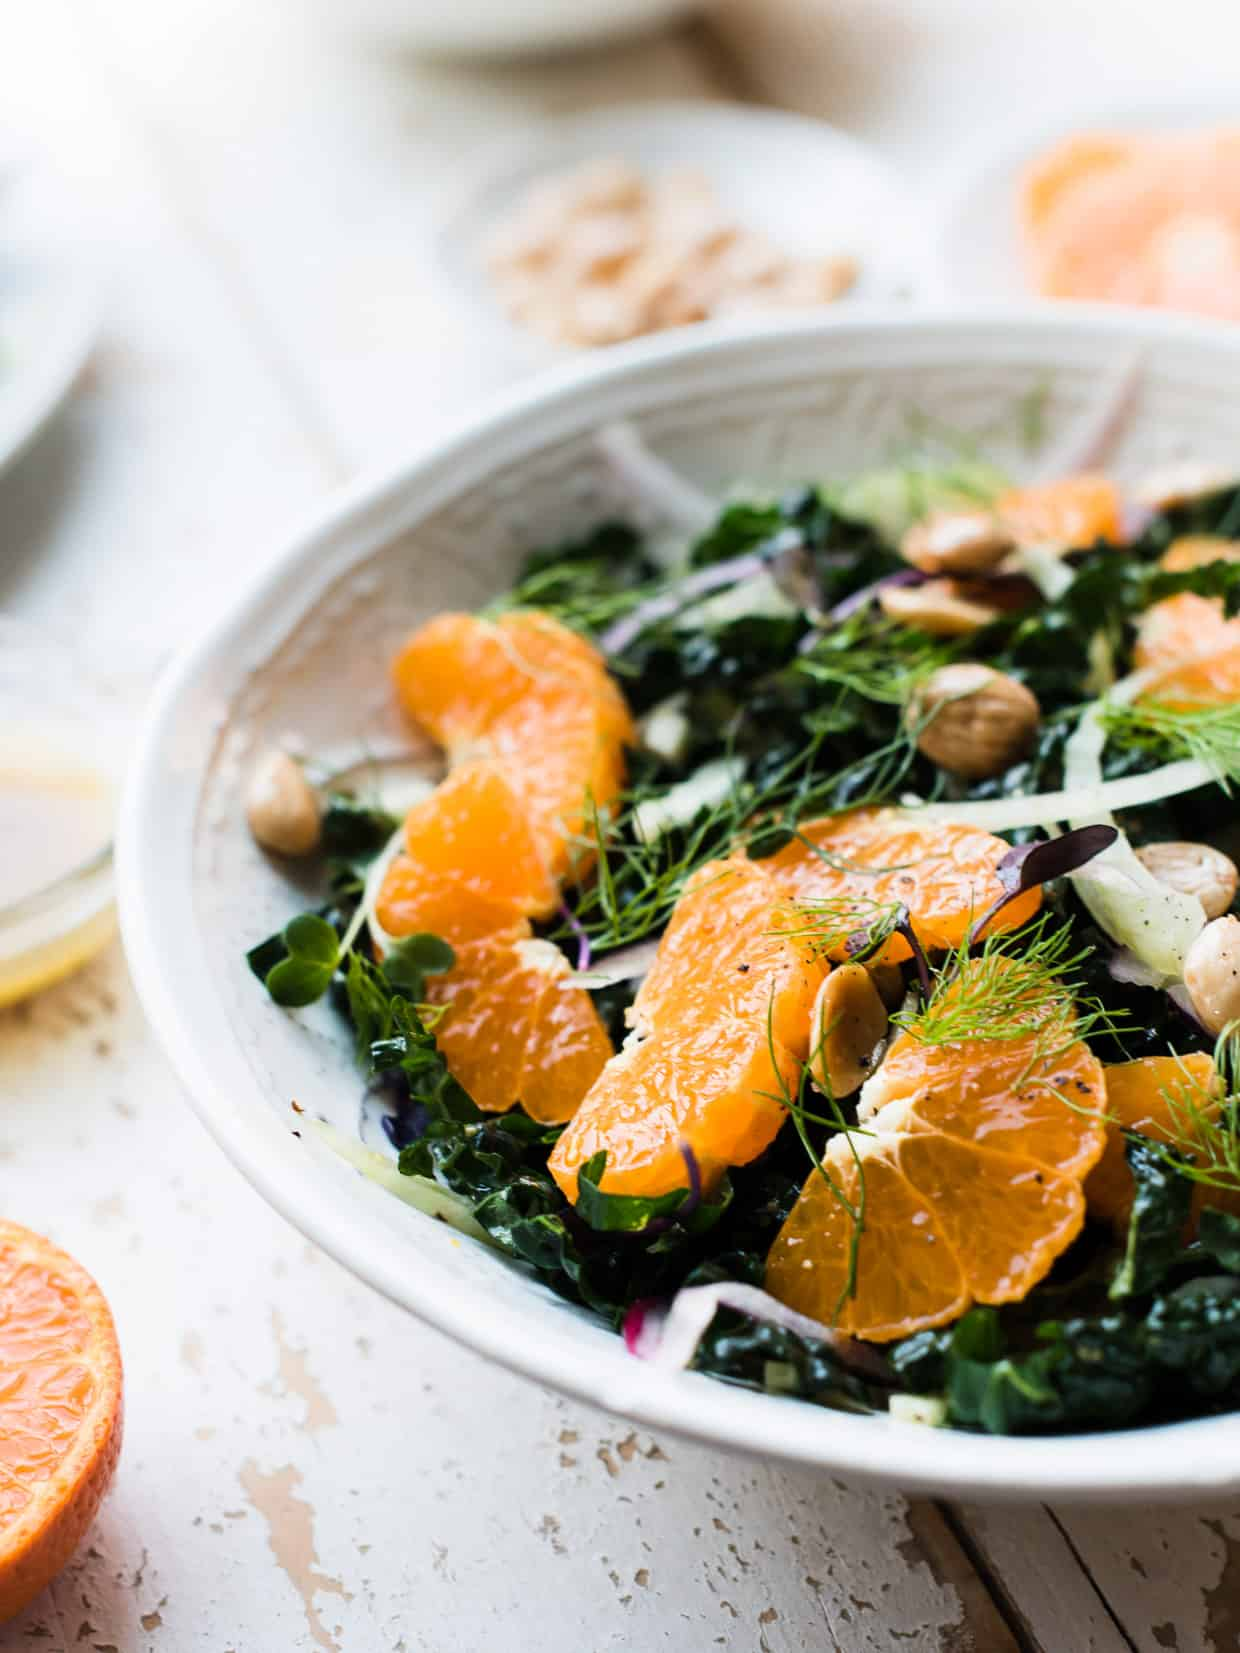 Juicy mandarin orange slices top kale salad in white bowl